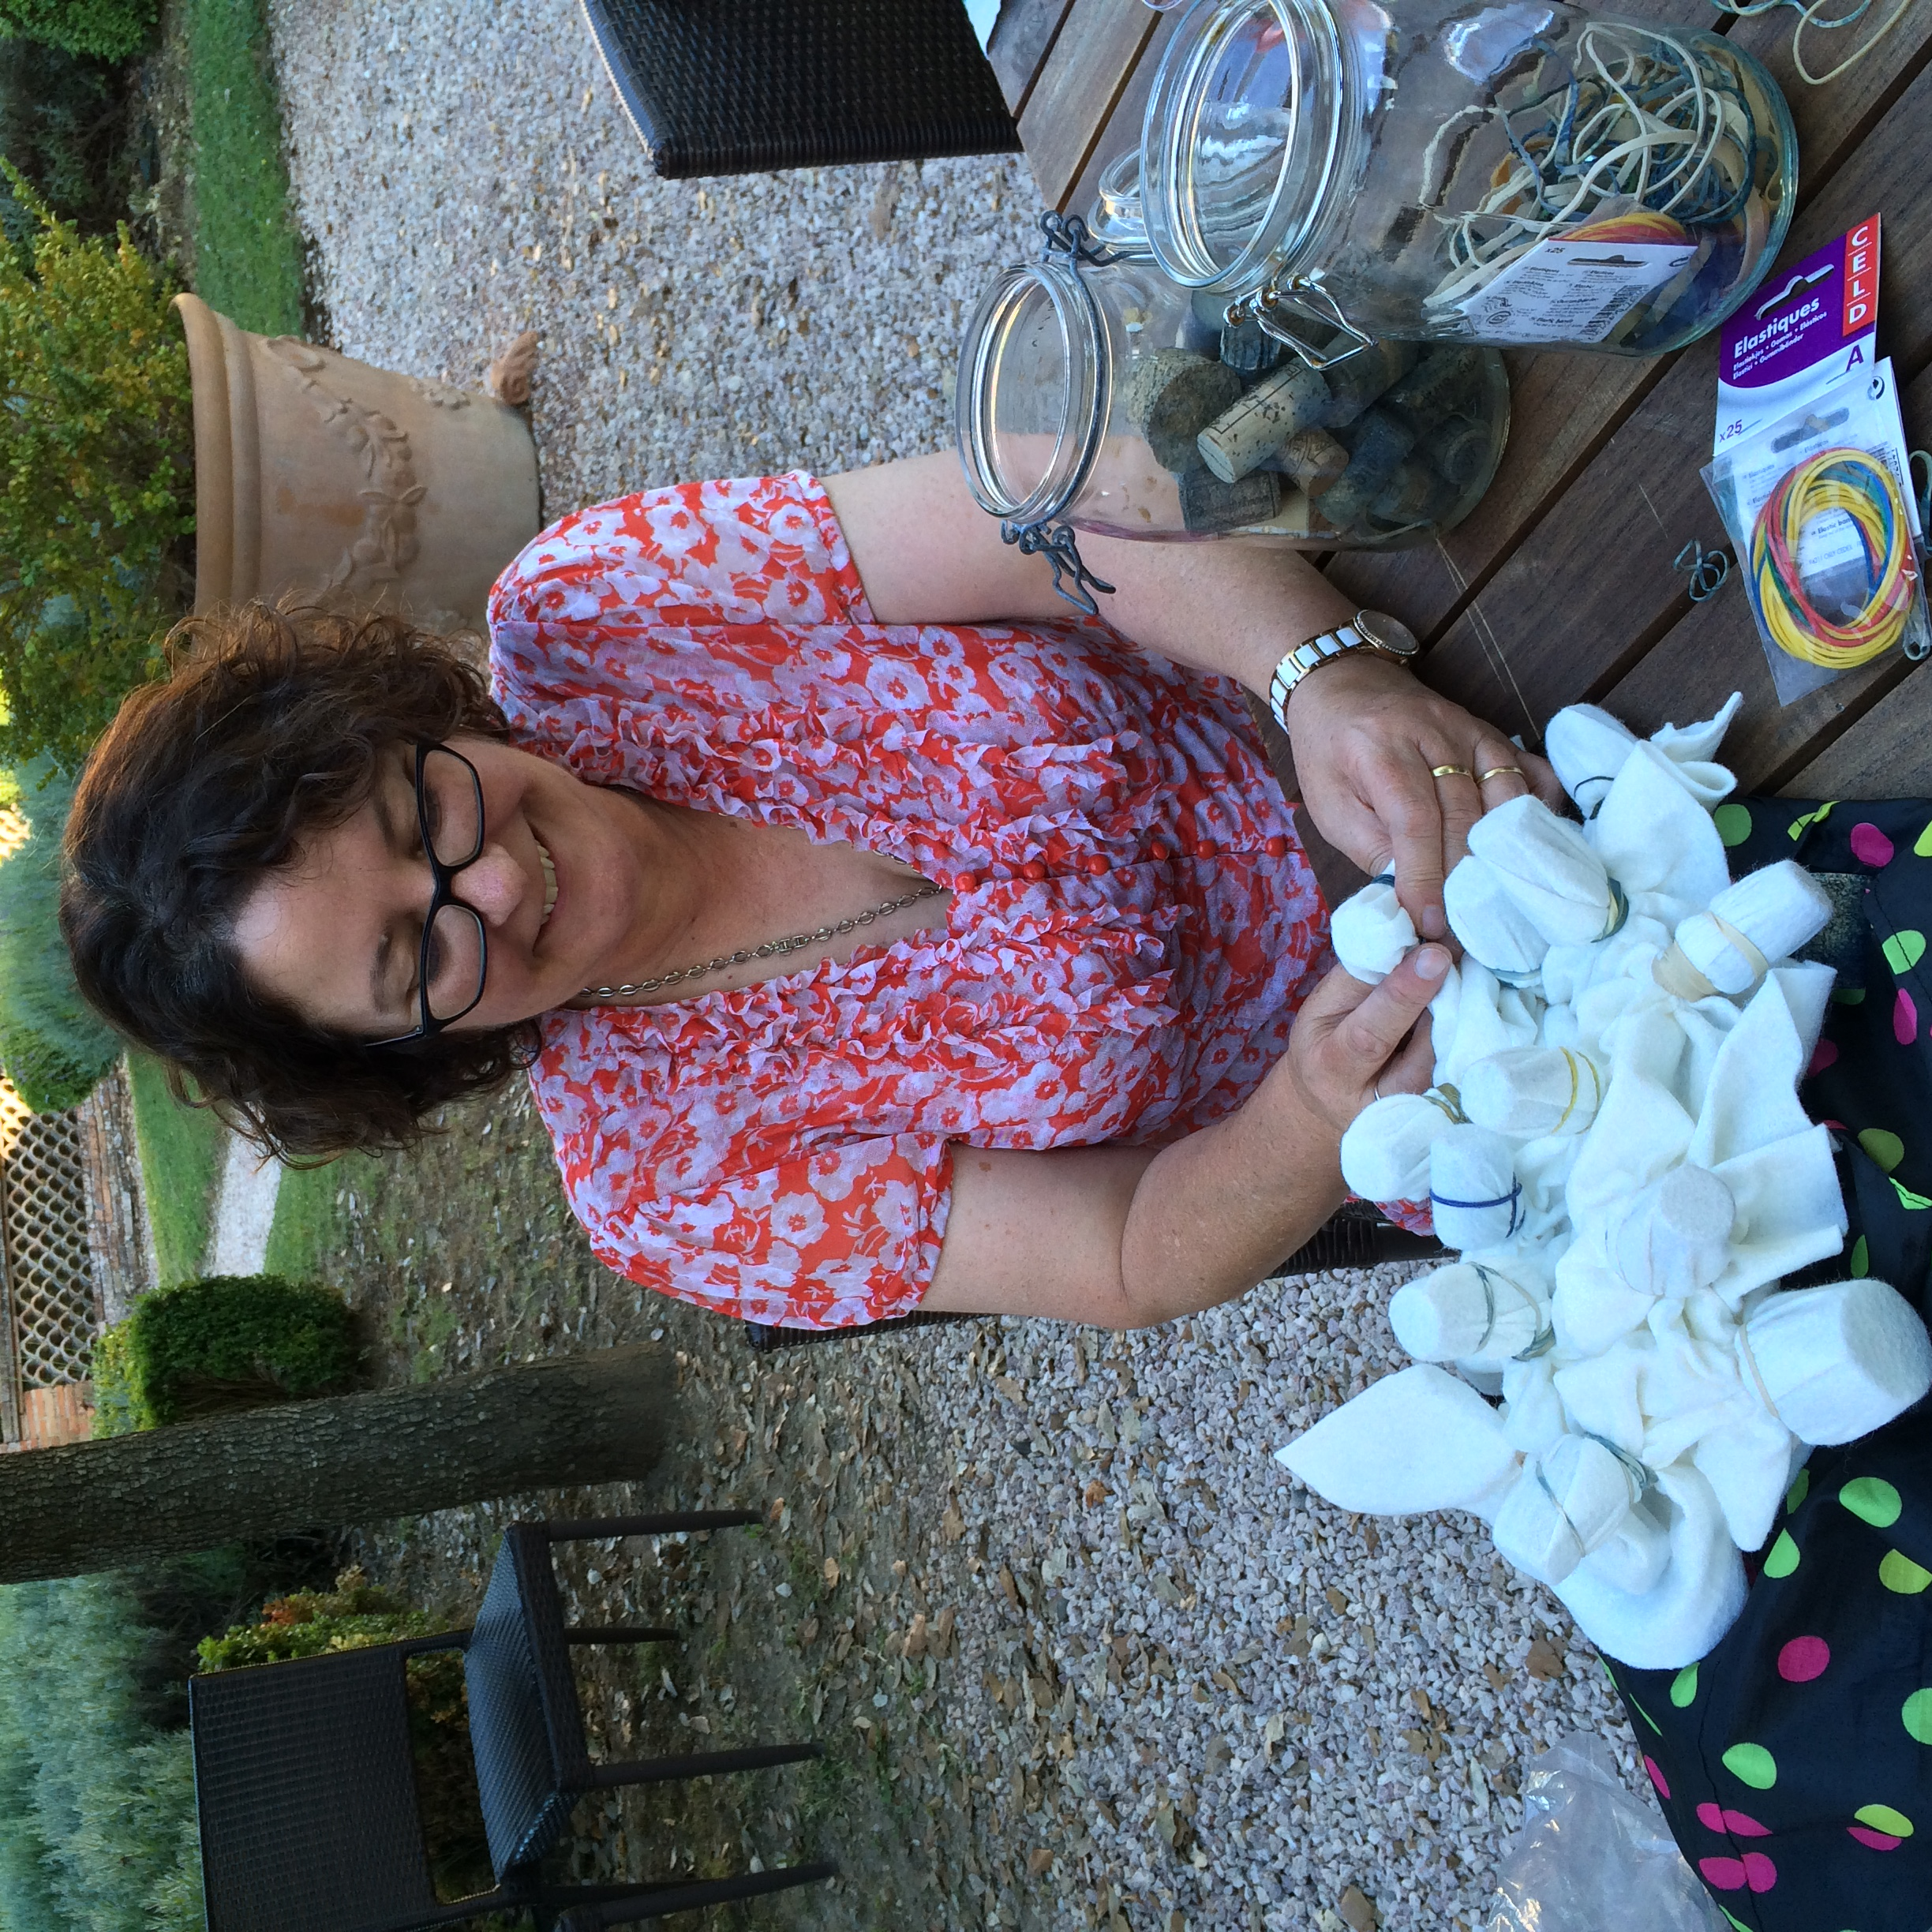 Helen preparing fabric to be dyed.